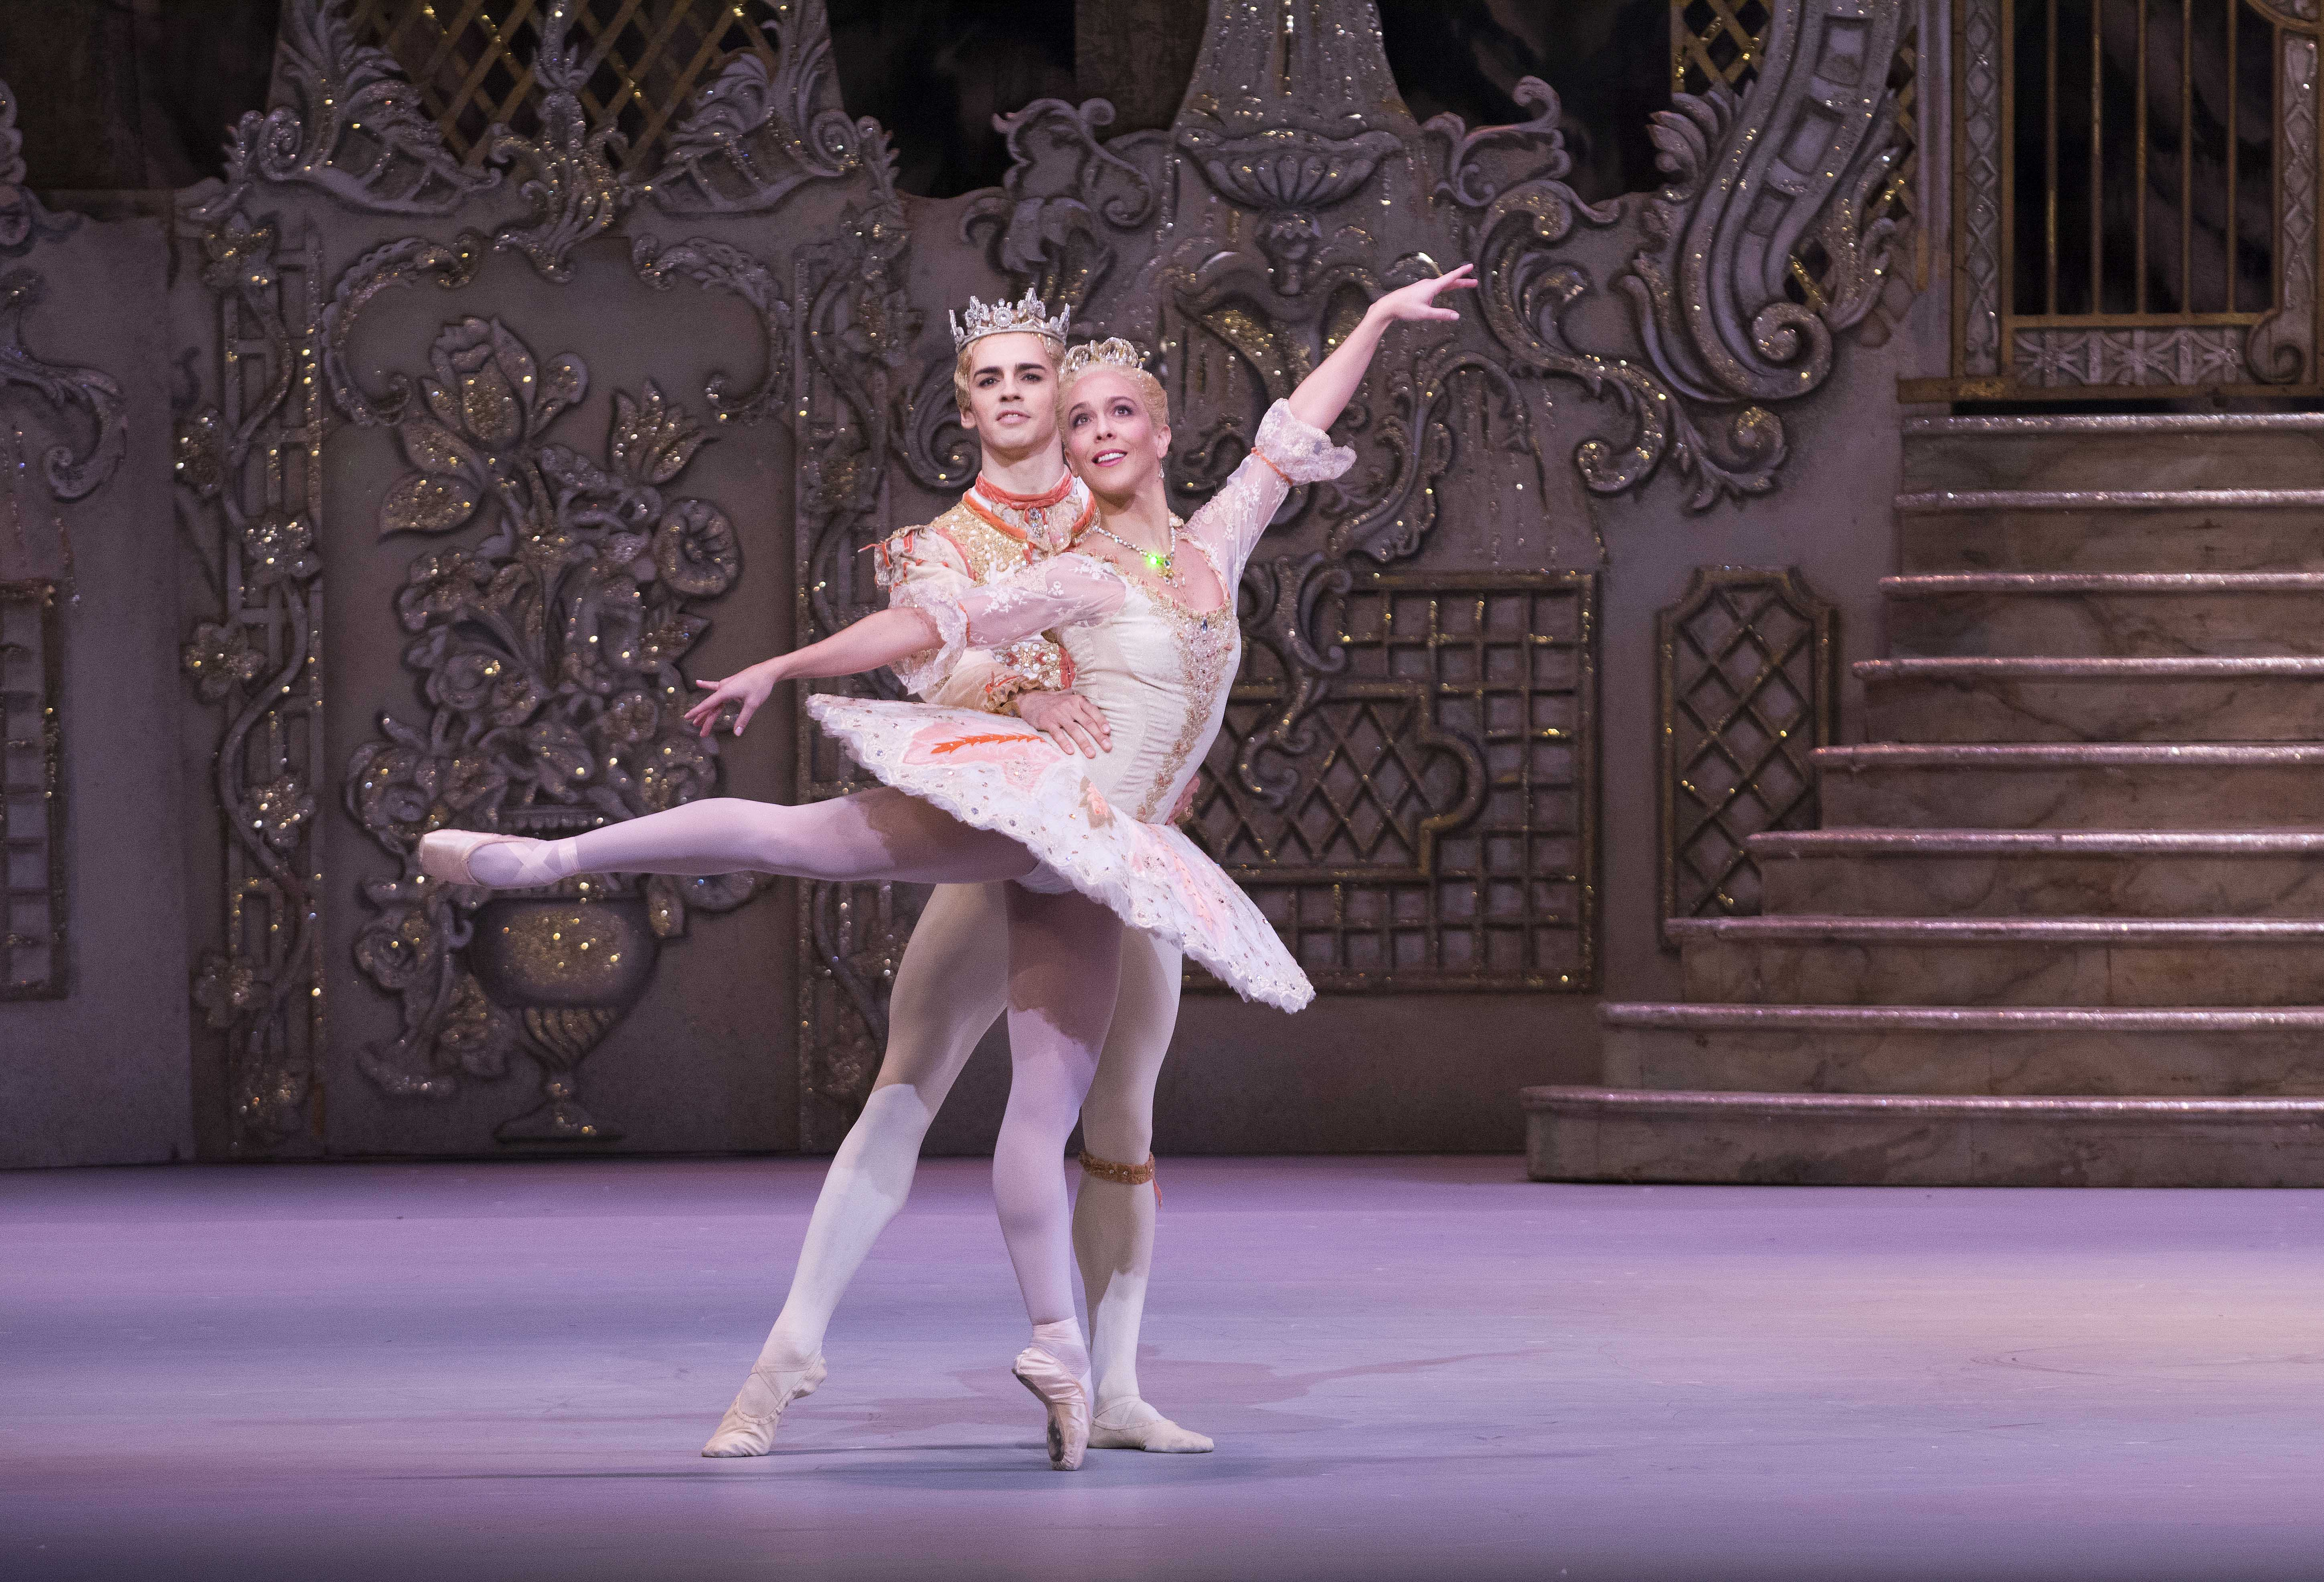 Laura Morera and Federico Bonelli (as The Sugar Plum Fairy and her Cavalier) in 'The Nutcracker' (photo by Tristram Kenton, ROH, 2013)